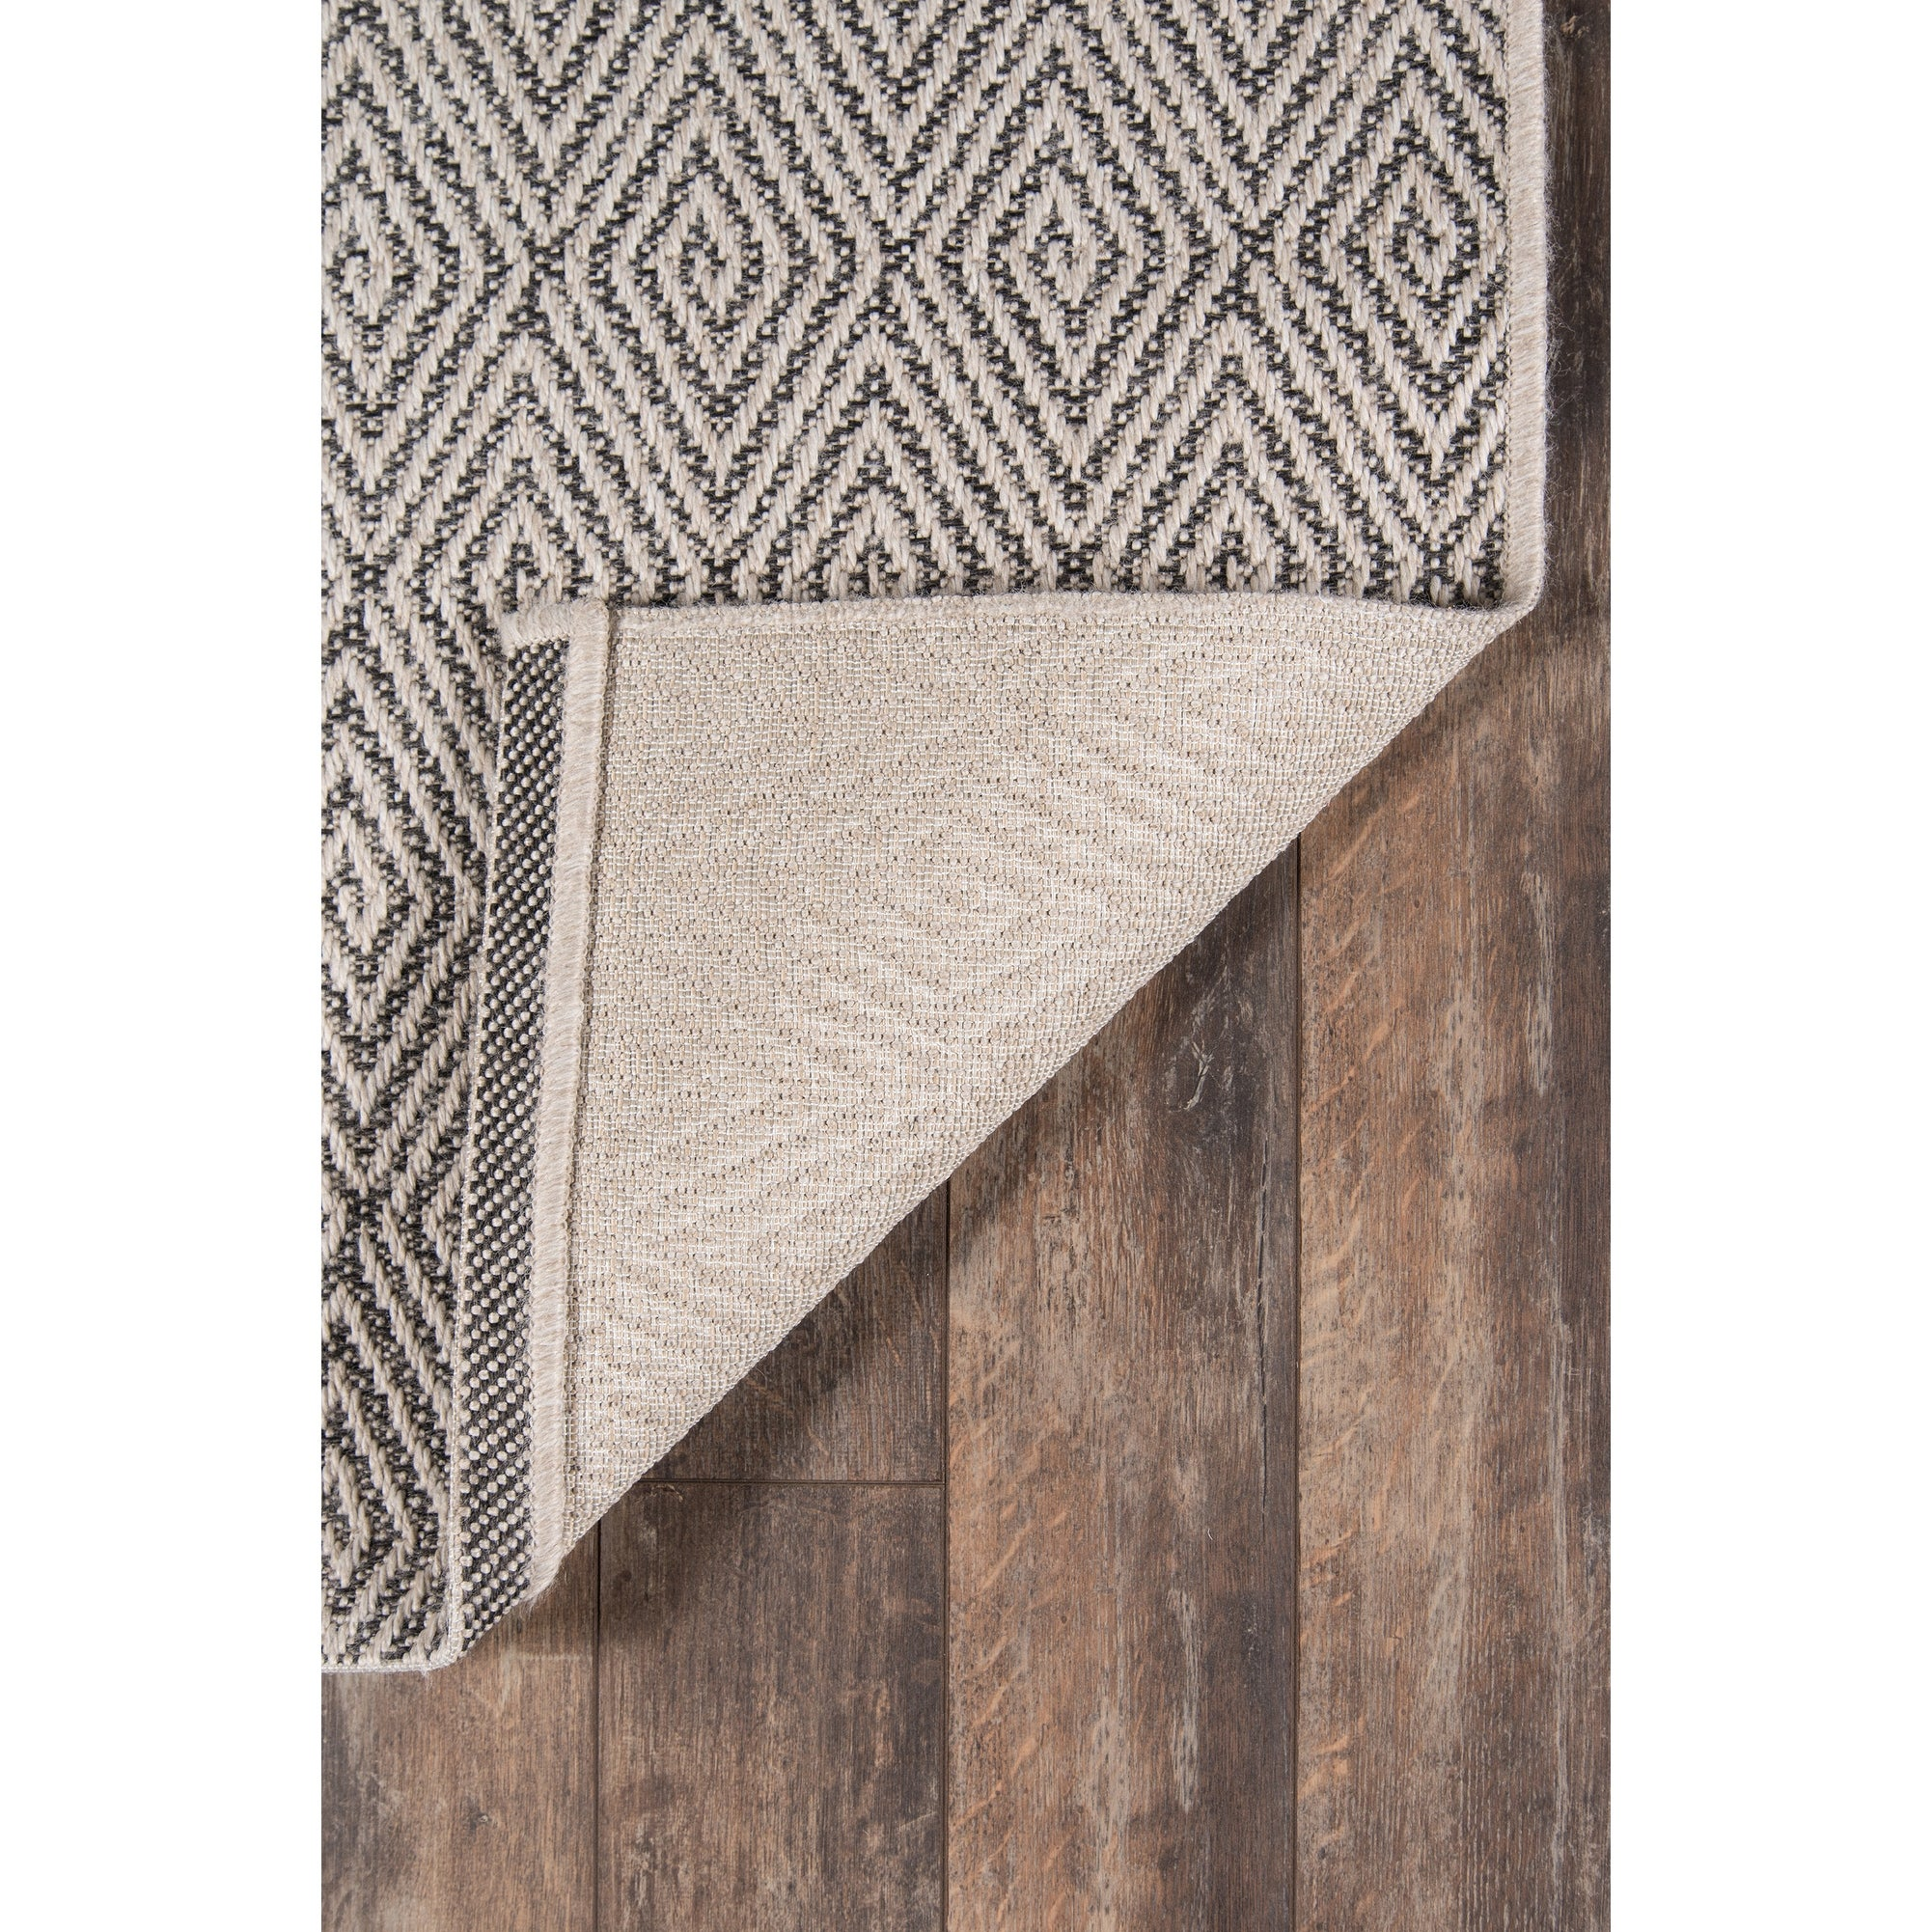 Erin Gates By Momeni Downeast Wells Geometric Indoor Outdoor Rug On Sale Overstock 27634573